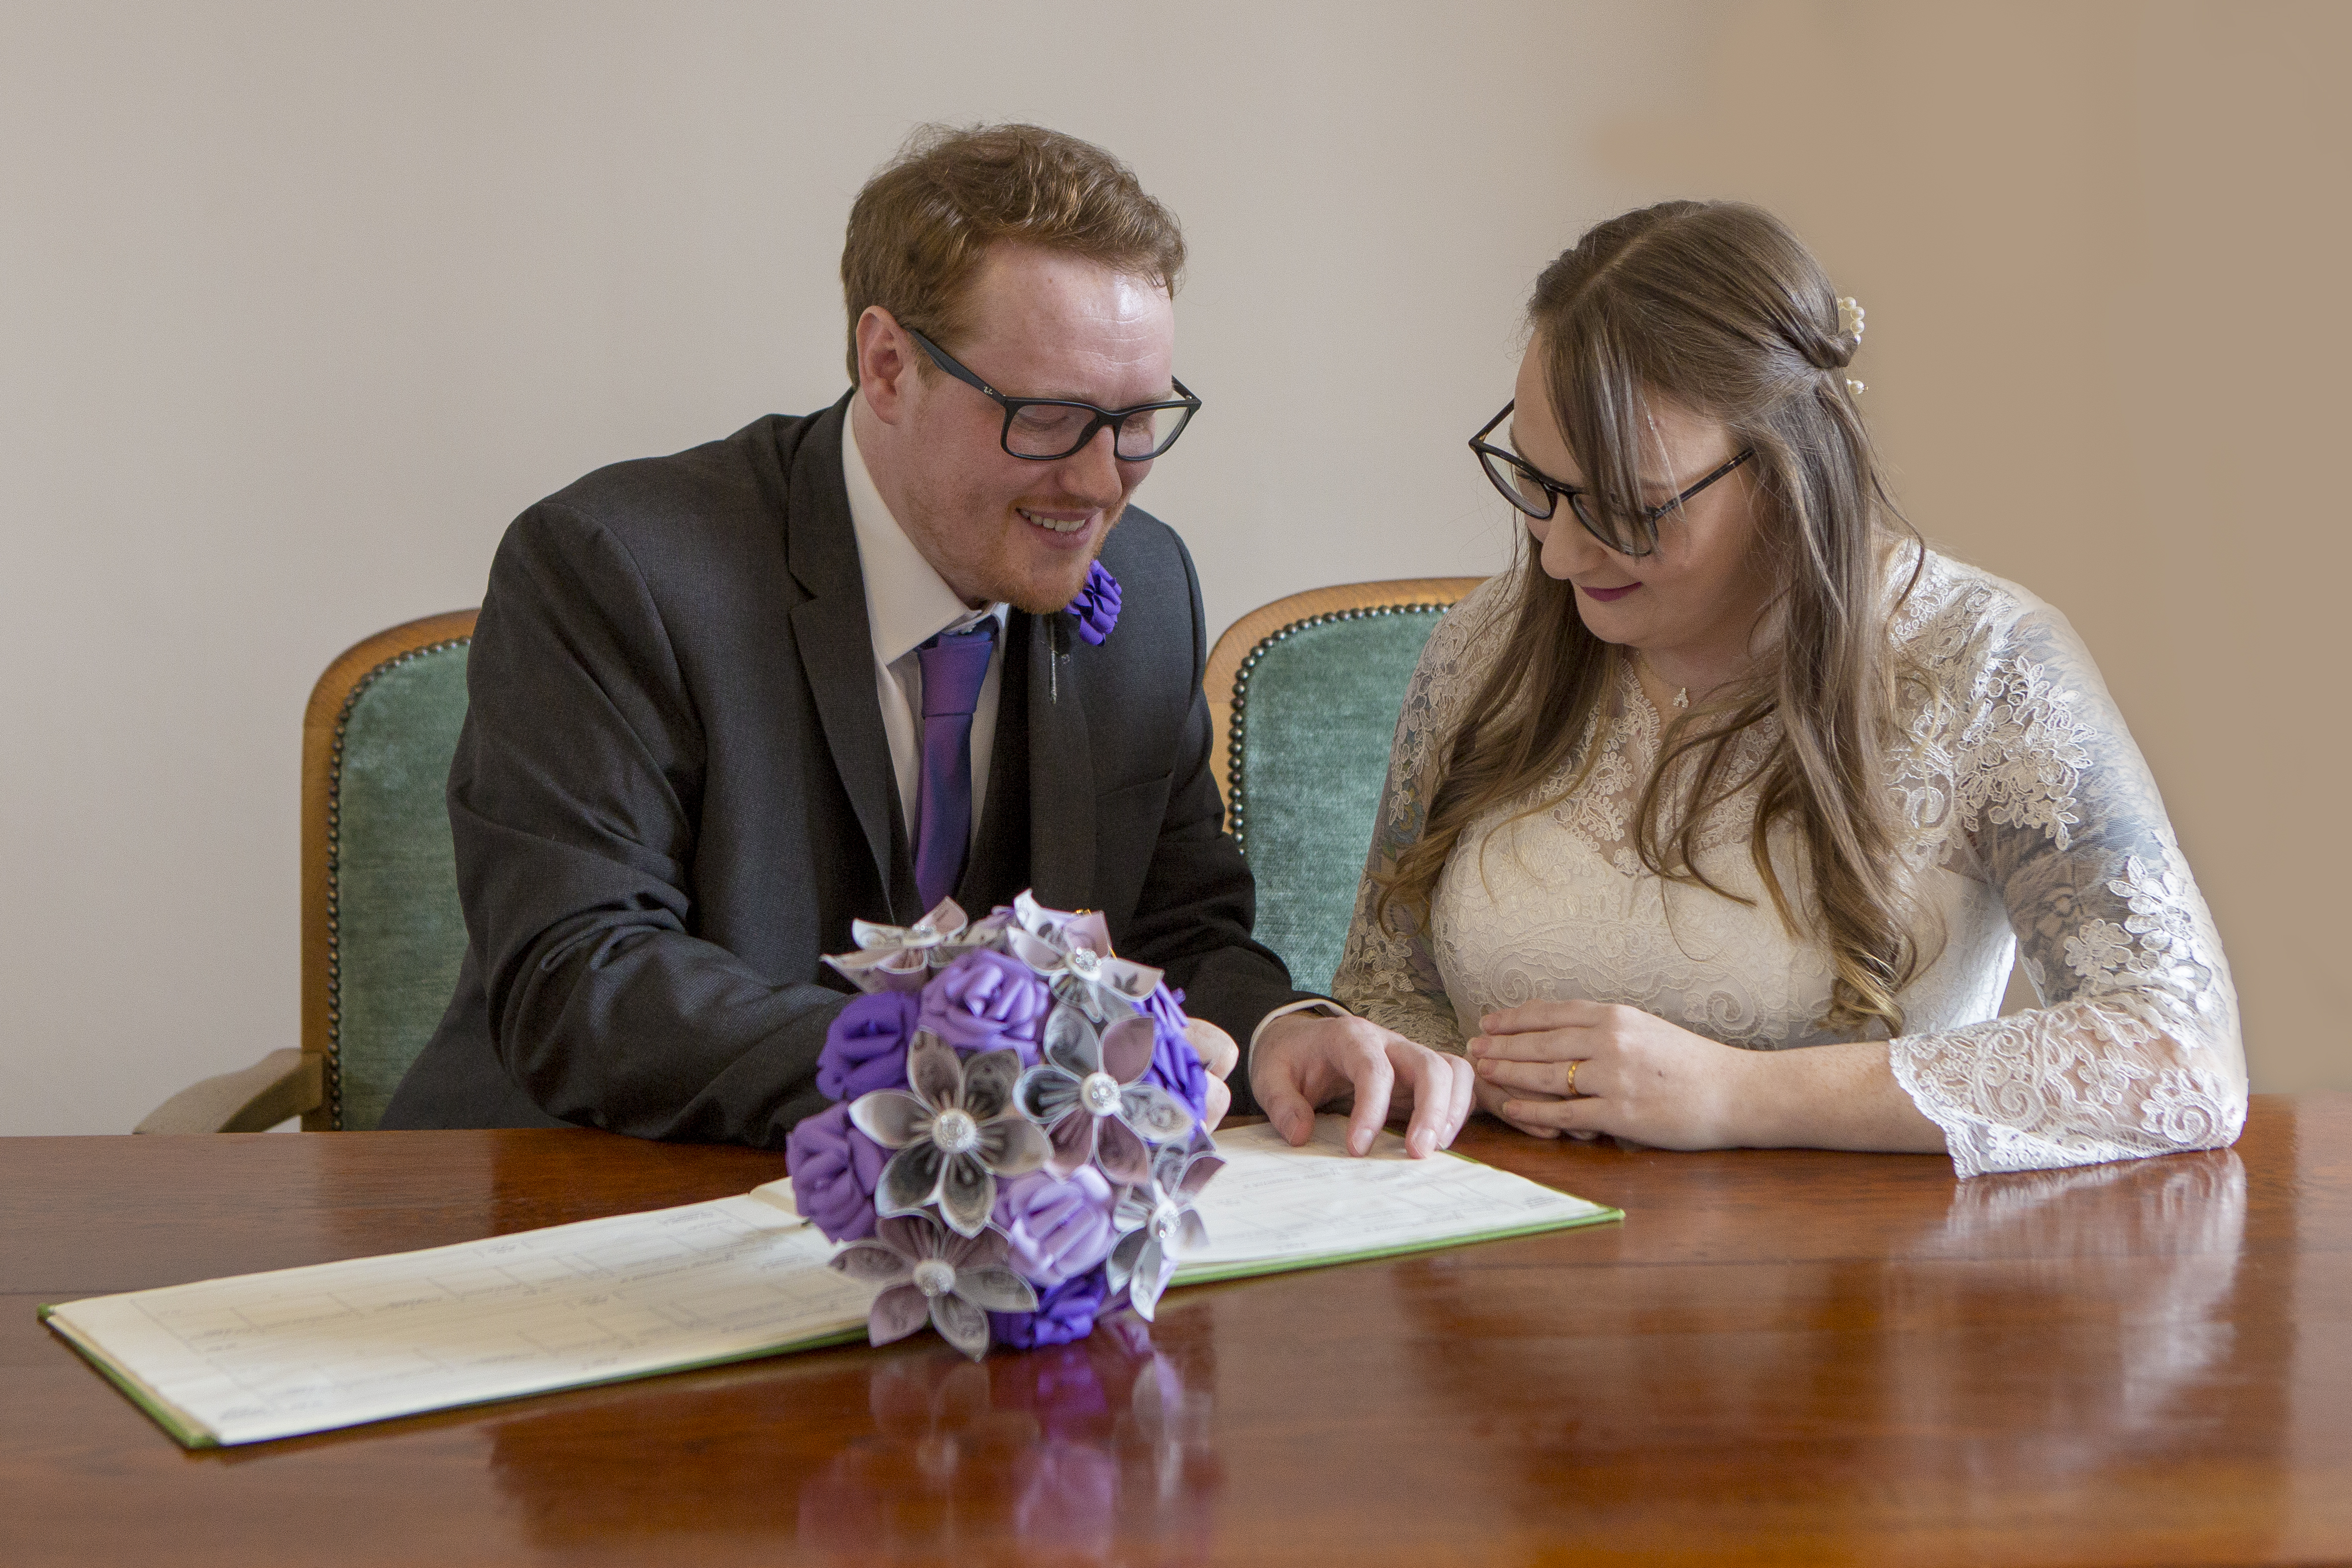 Signing of the marriage - Emma Lowe Photography